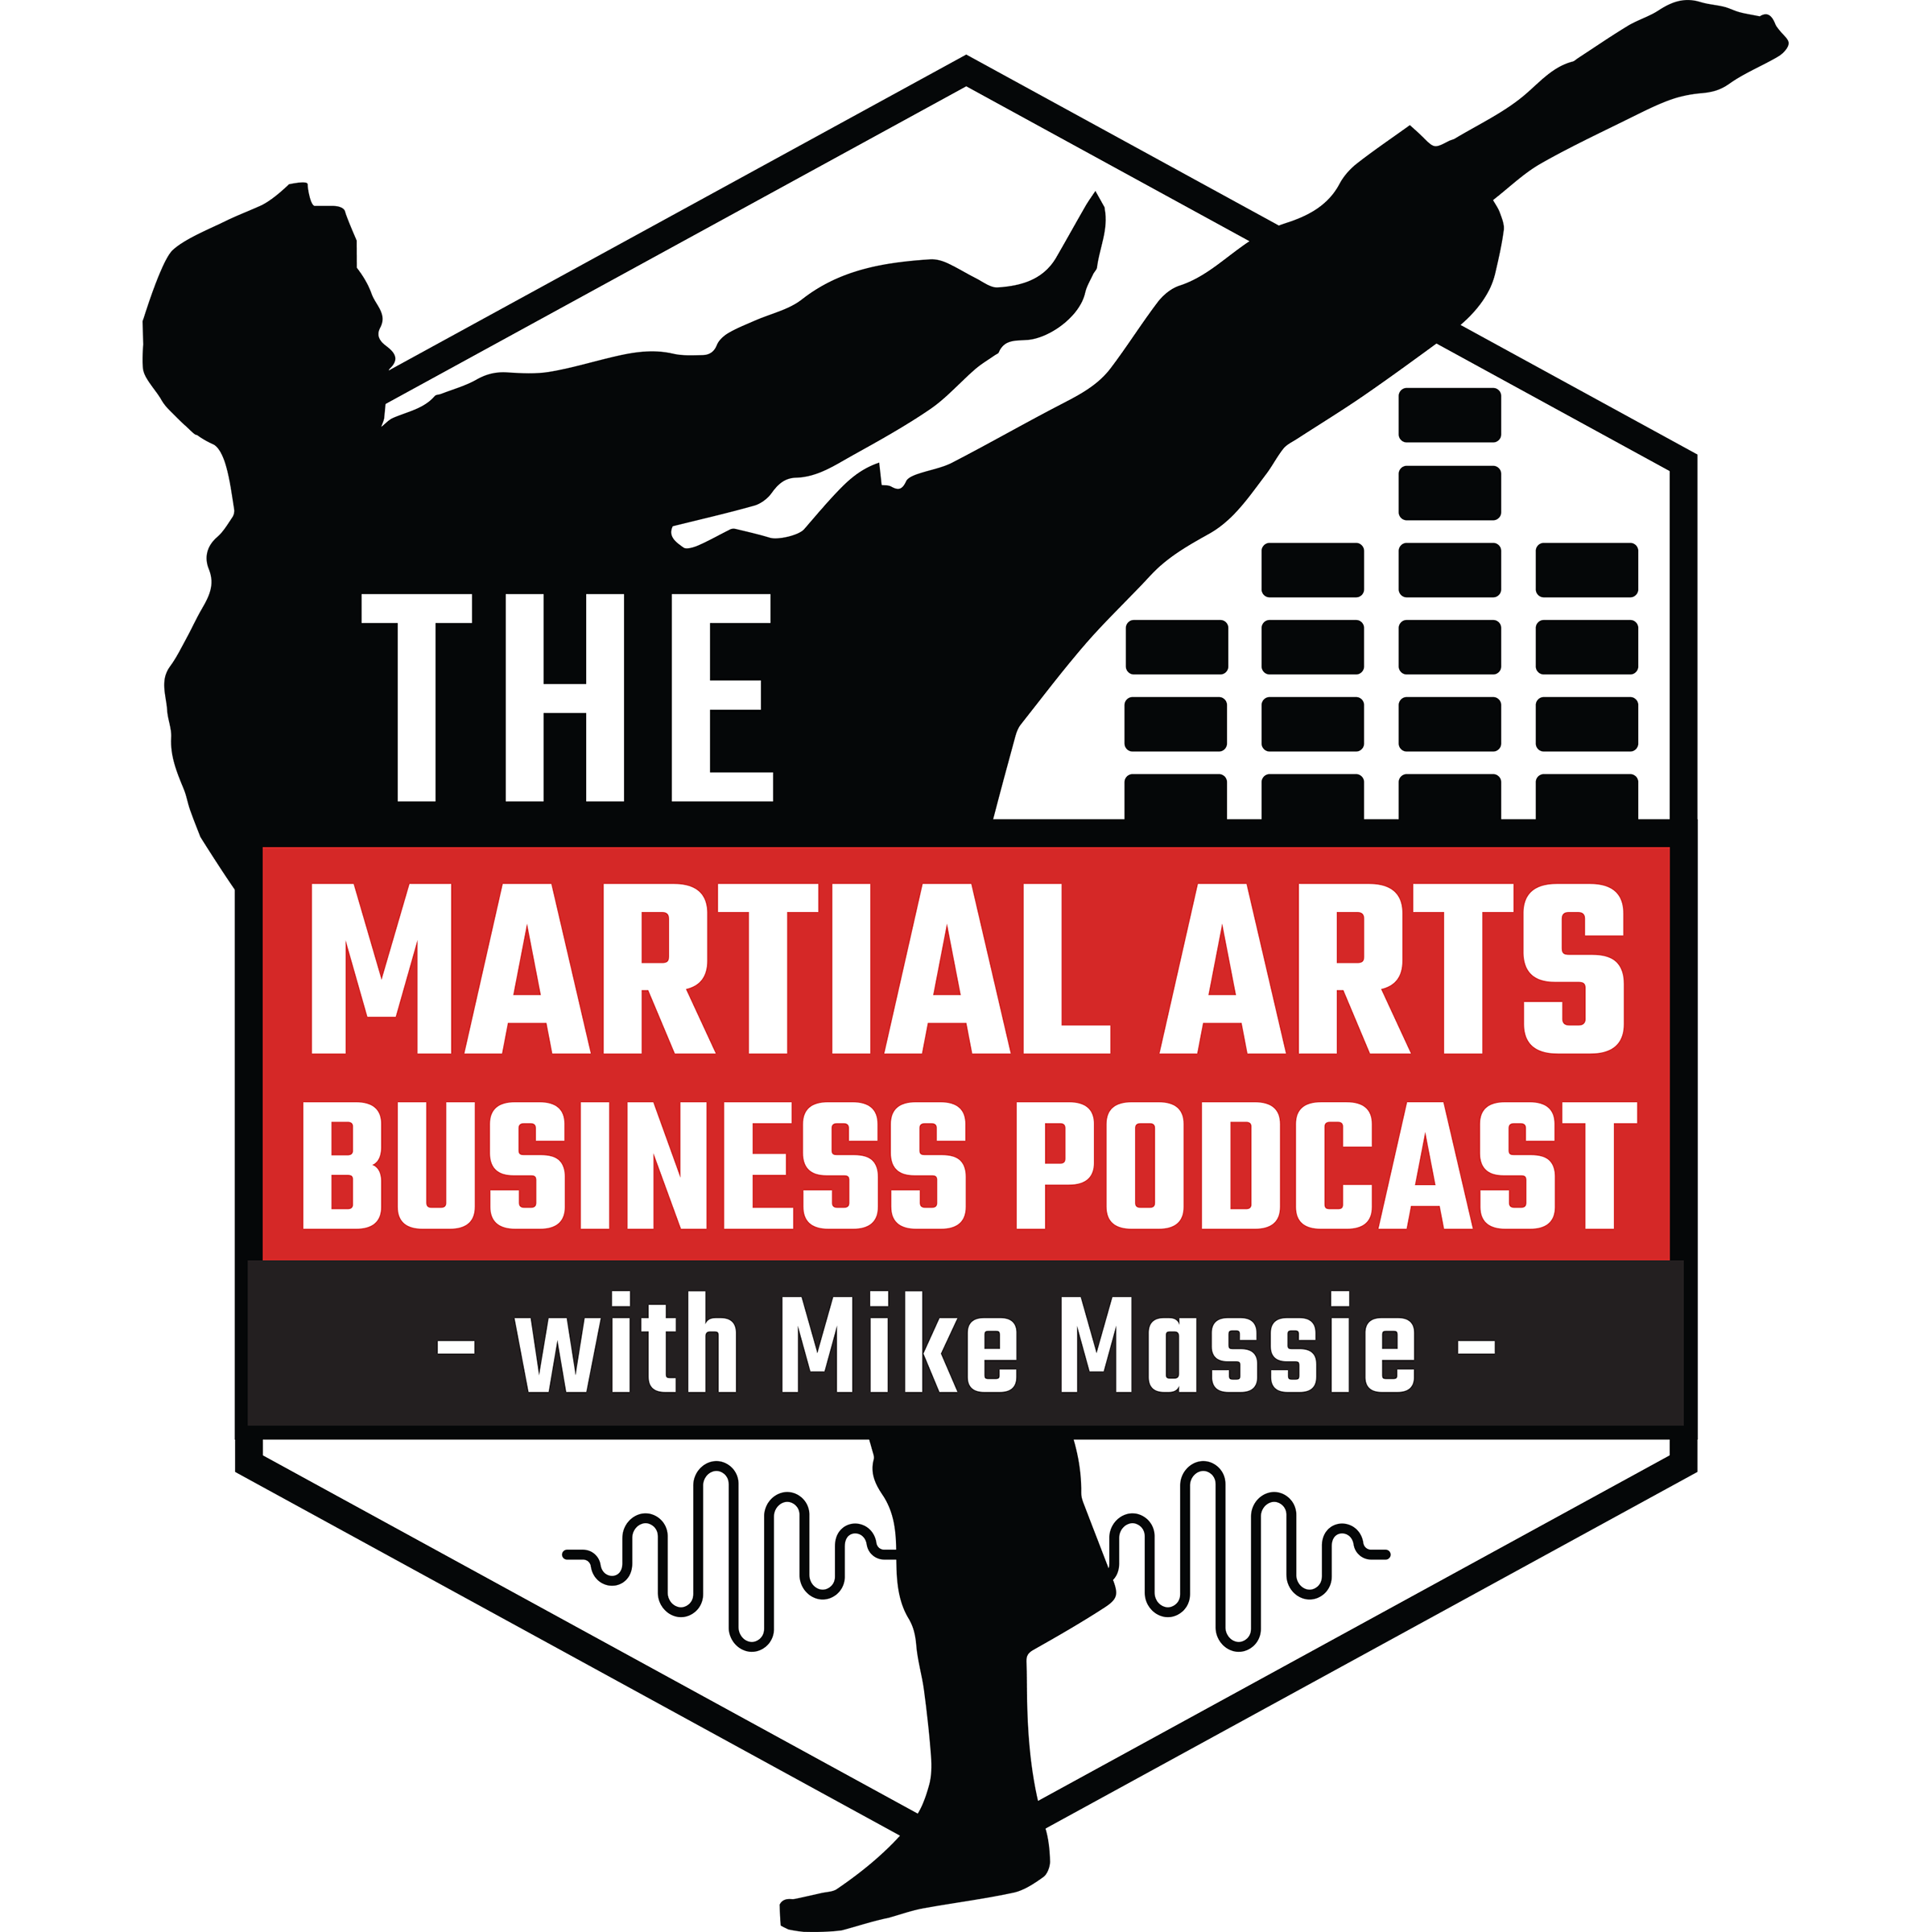 The Martial Arts Business Podcast